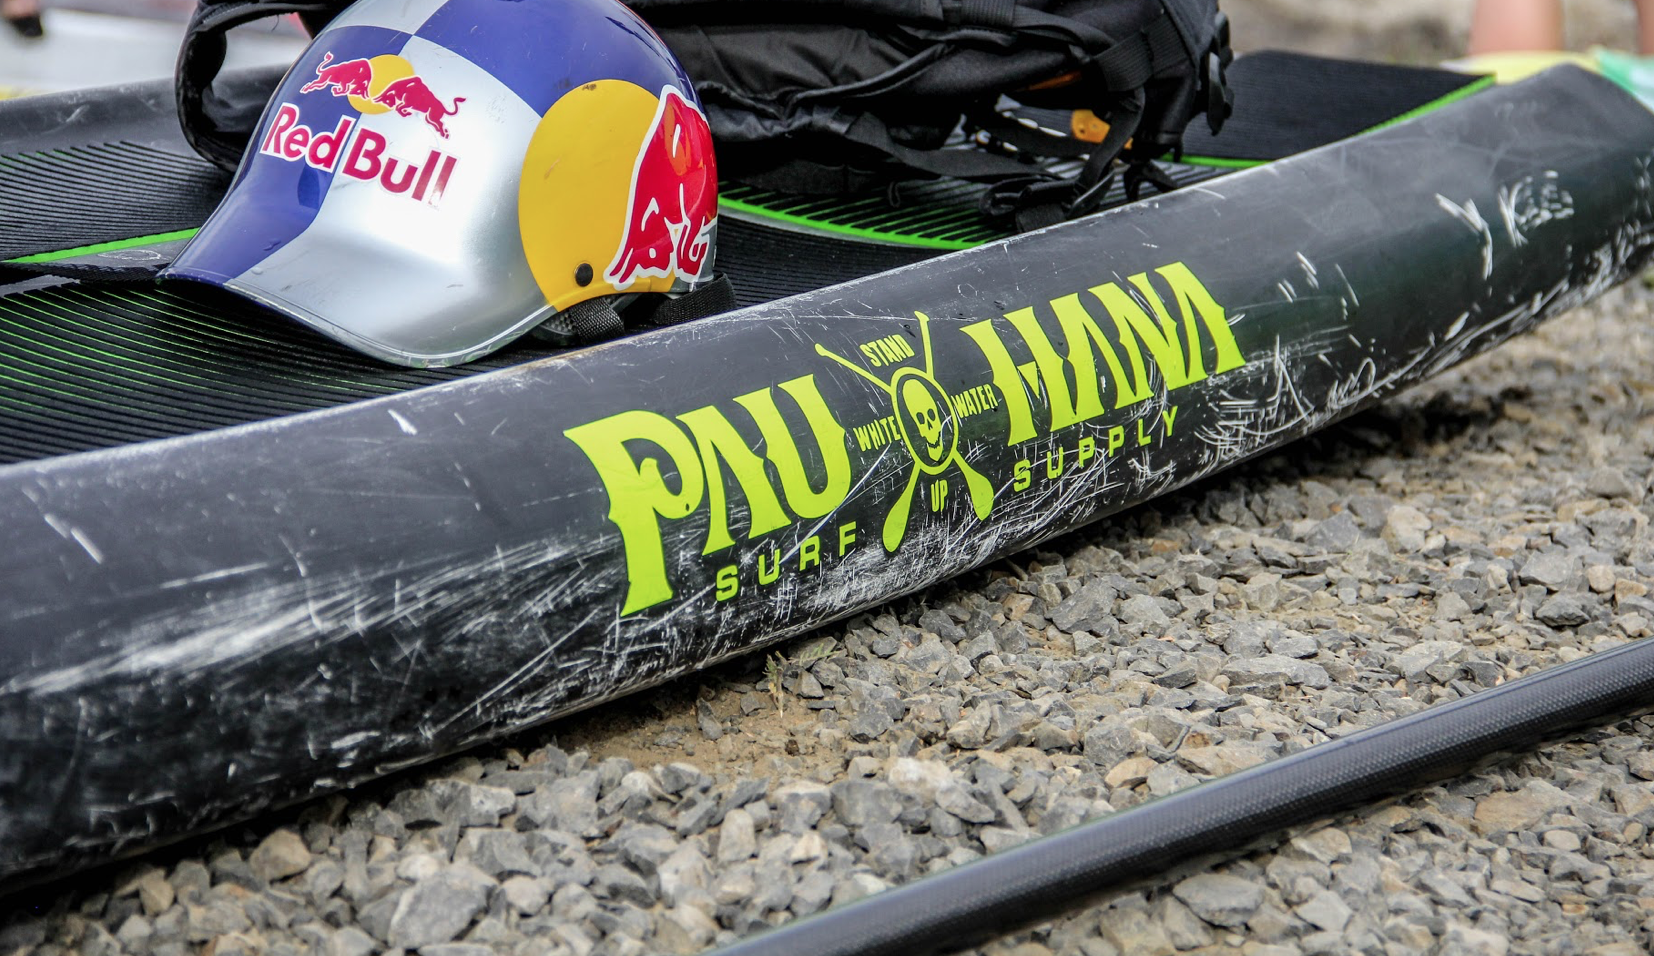 This is the best white water paddle board by Pau Hana.White water SUP racing ricochet technology Pau hana close up